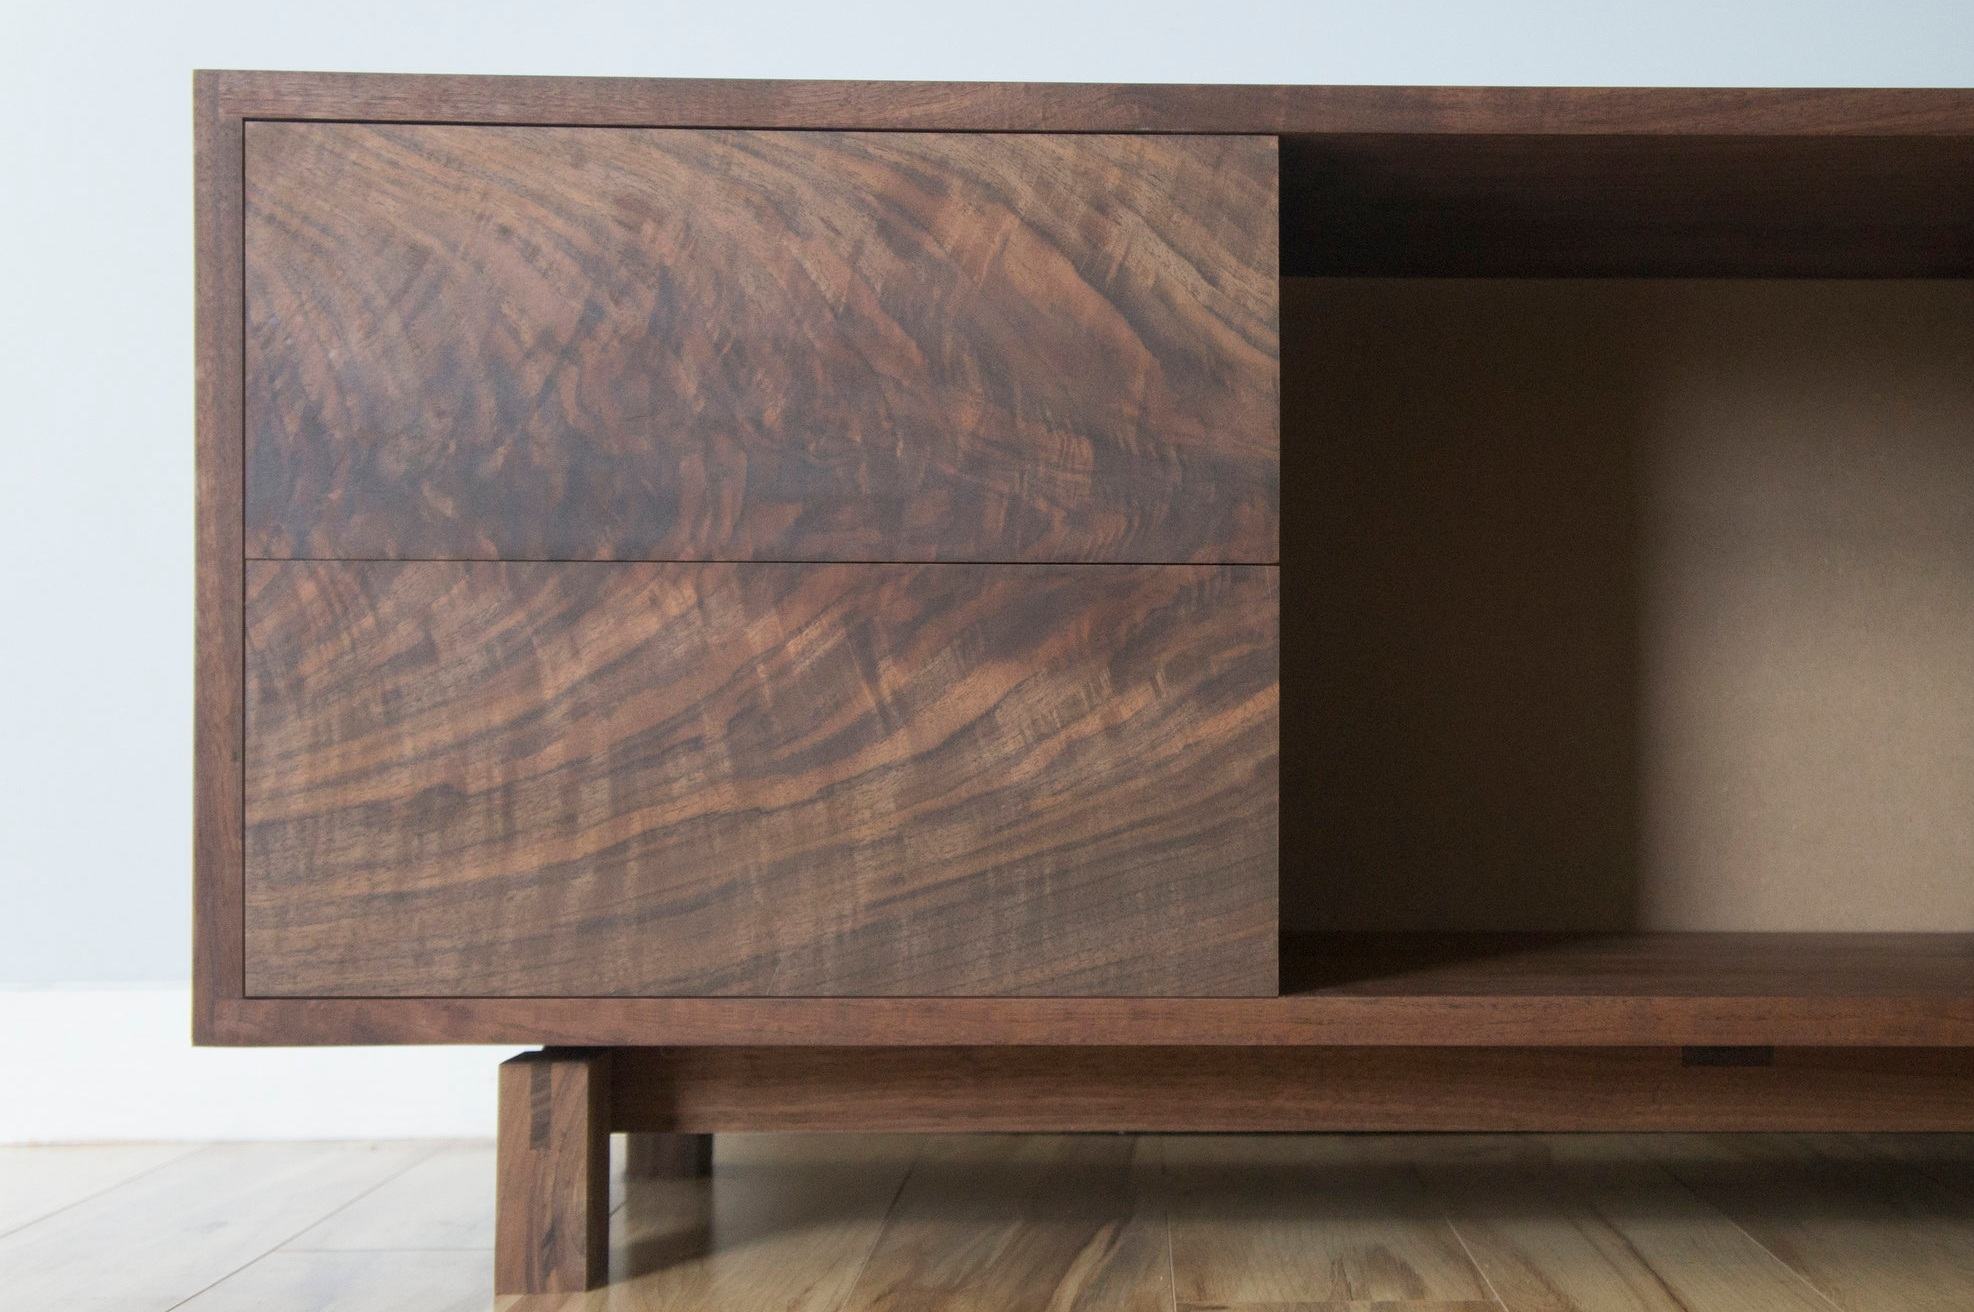 Picture console-walnut-front elevation-close up.jpg